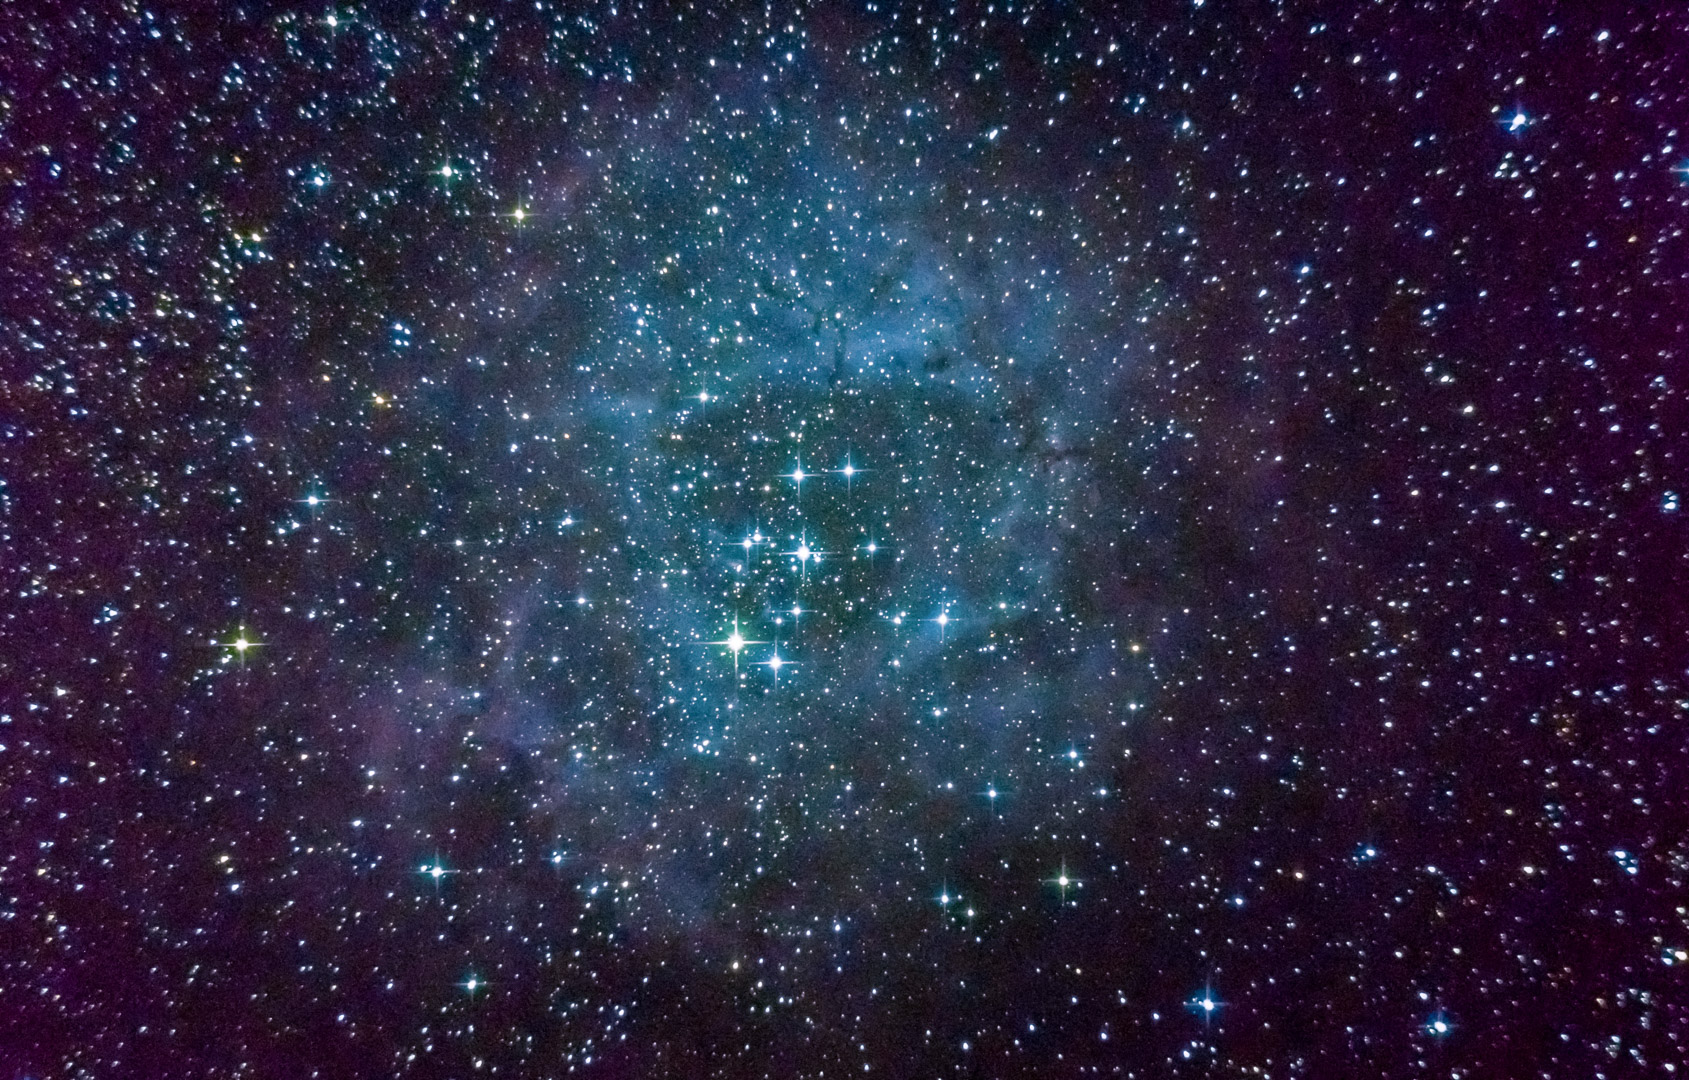 Rosette Nebula | Author Petar Marinov - ptr_marinov | PHOTO FORUM